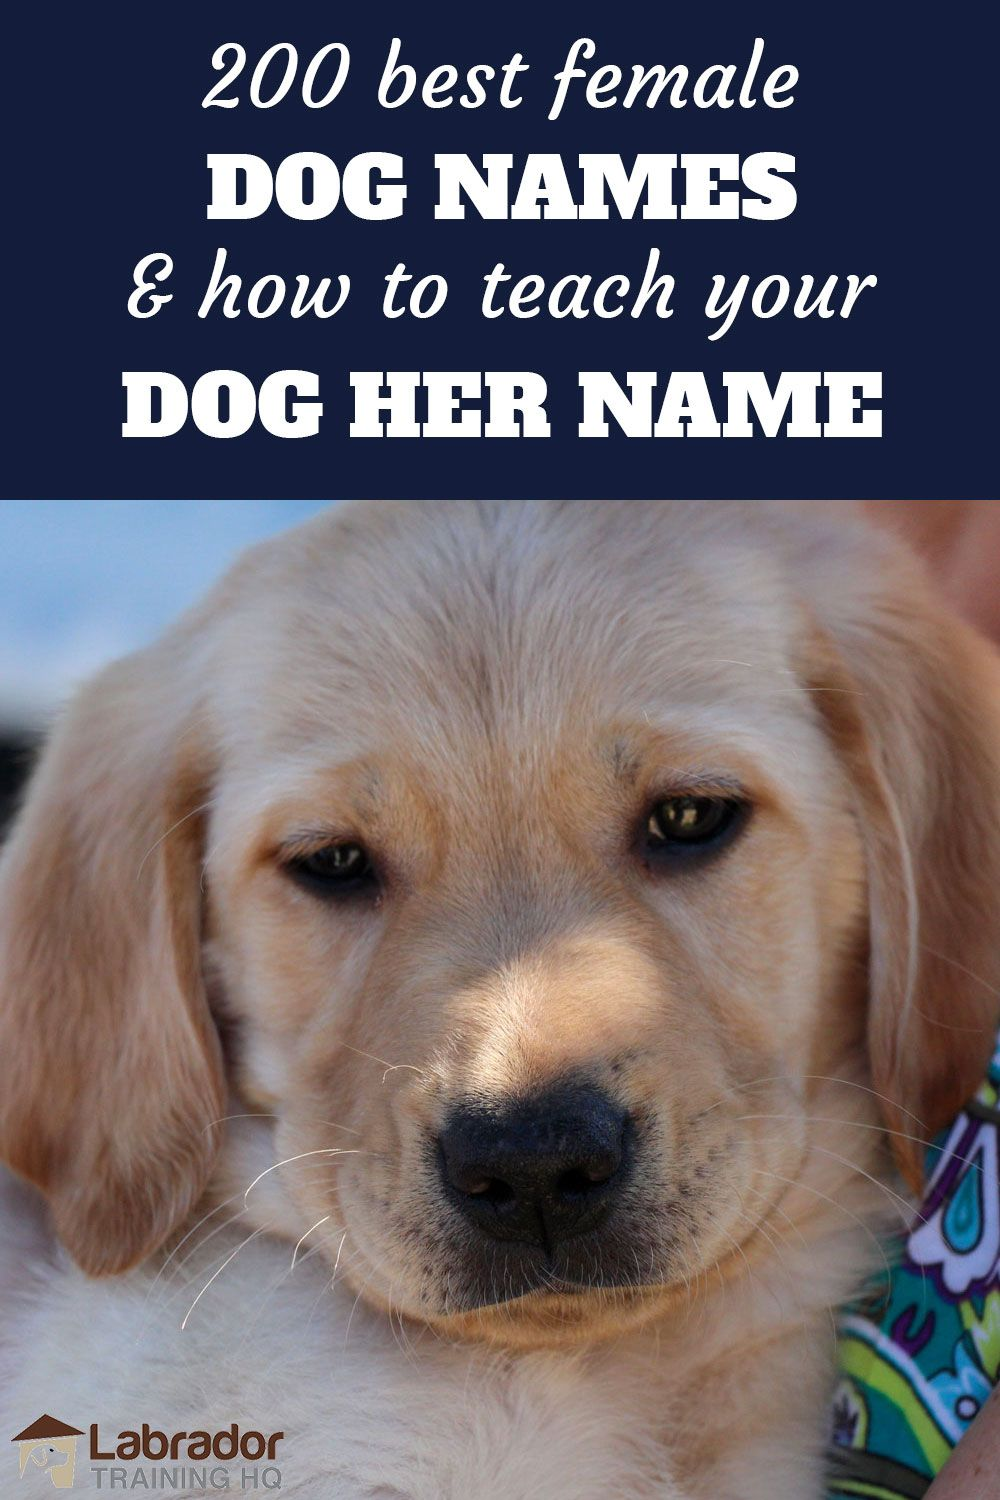 200 Best Female Dog Names And How To Teach Your Dog Their Name In